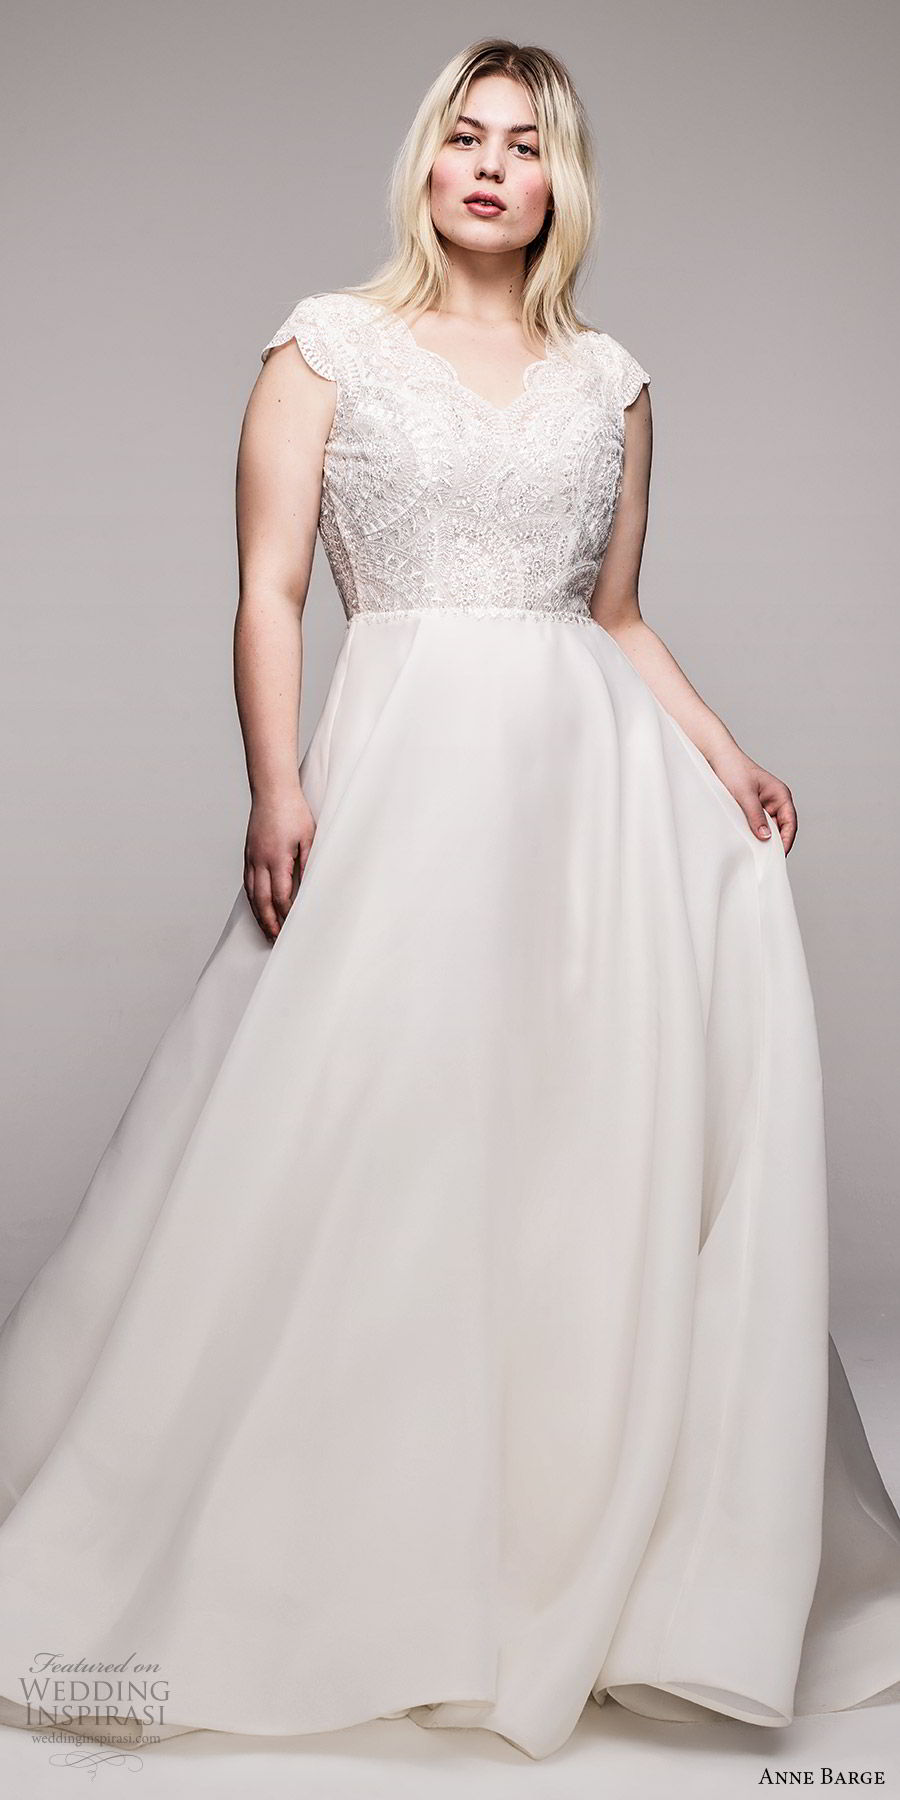 anne barge 2020 bridal plus size cap sleeves v neckline embellished bodice a line ball gown wedding dress (7) romantic chapel train mv